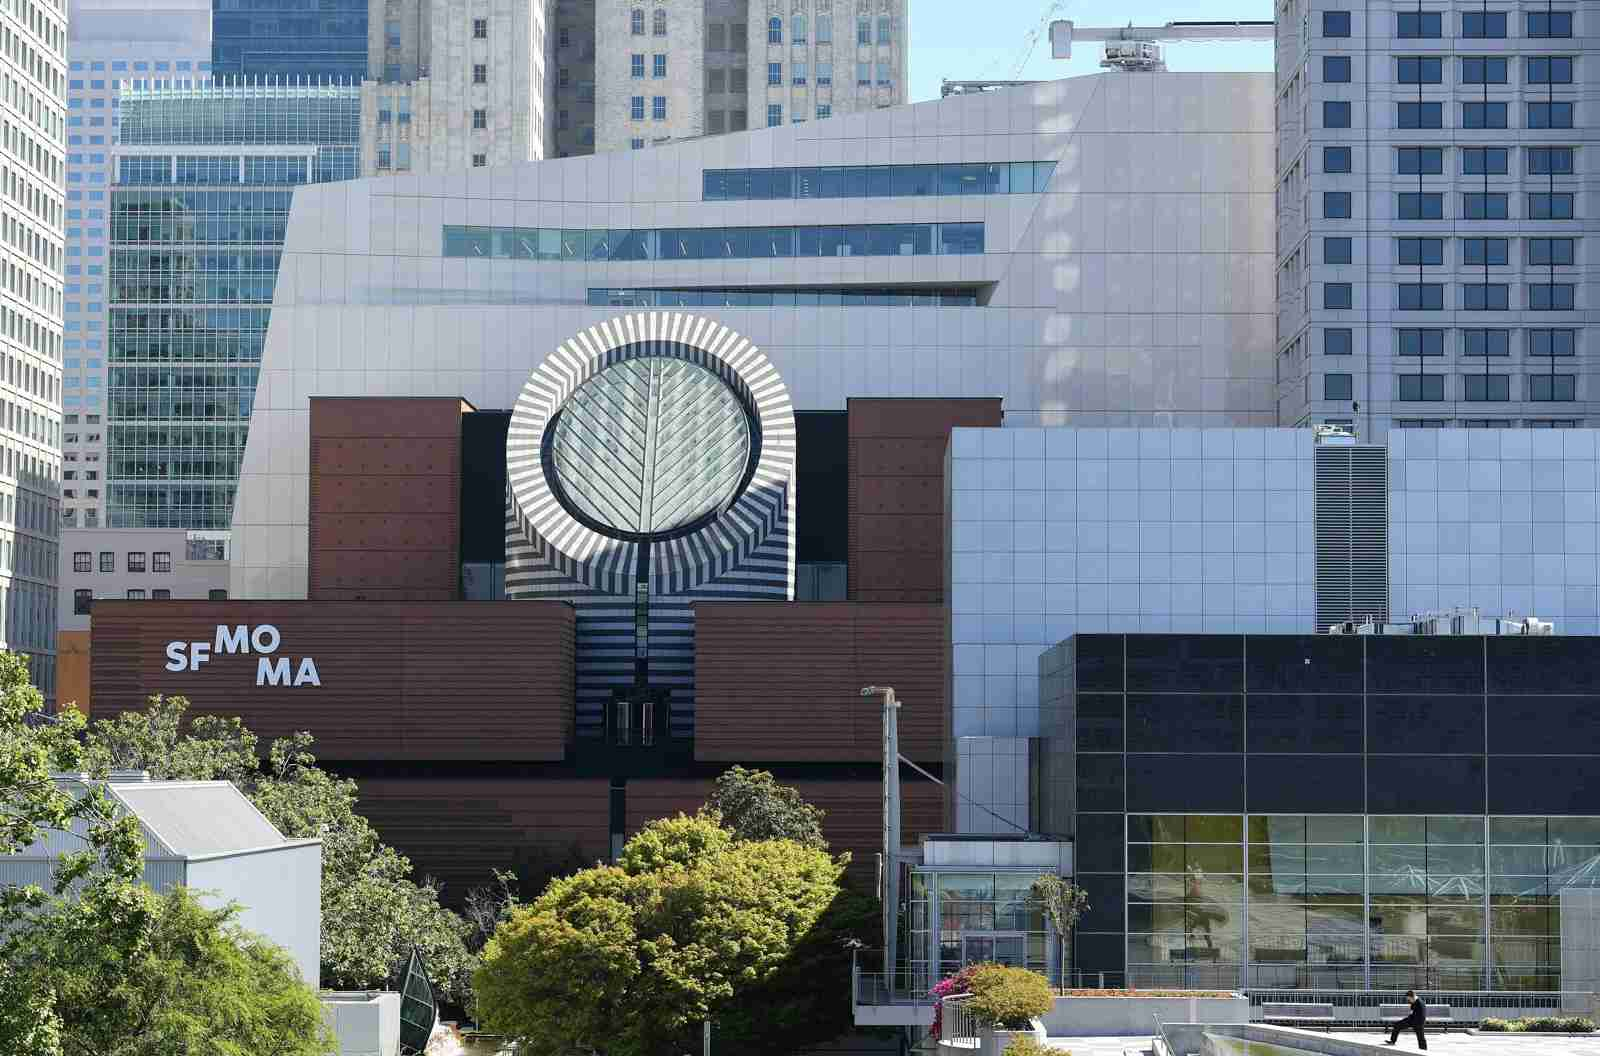 The San Francisco Museum of Modern Art (SFMOMA). (Photo by JOSH EDELSON/AFP/Getty Images)